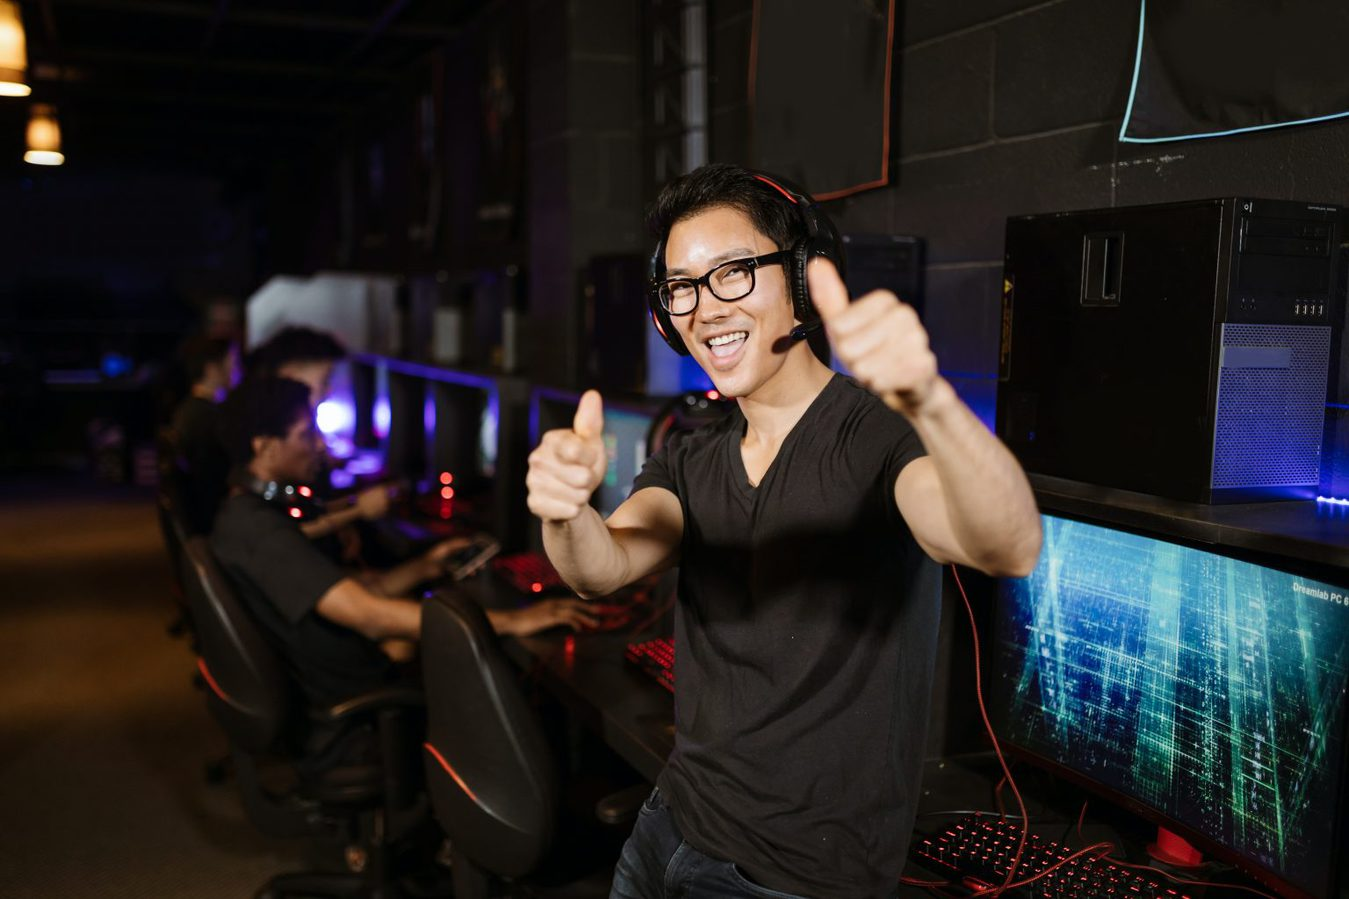 man wearing headset holding two thumbs up